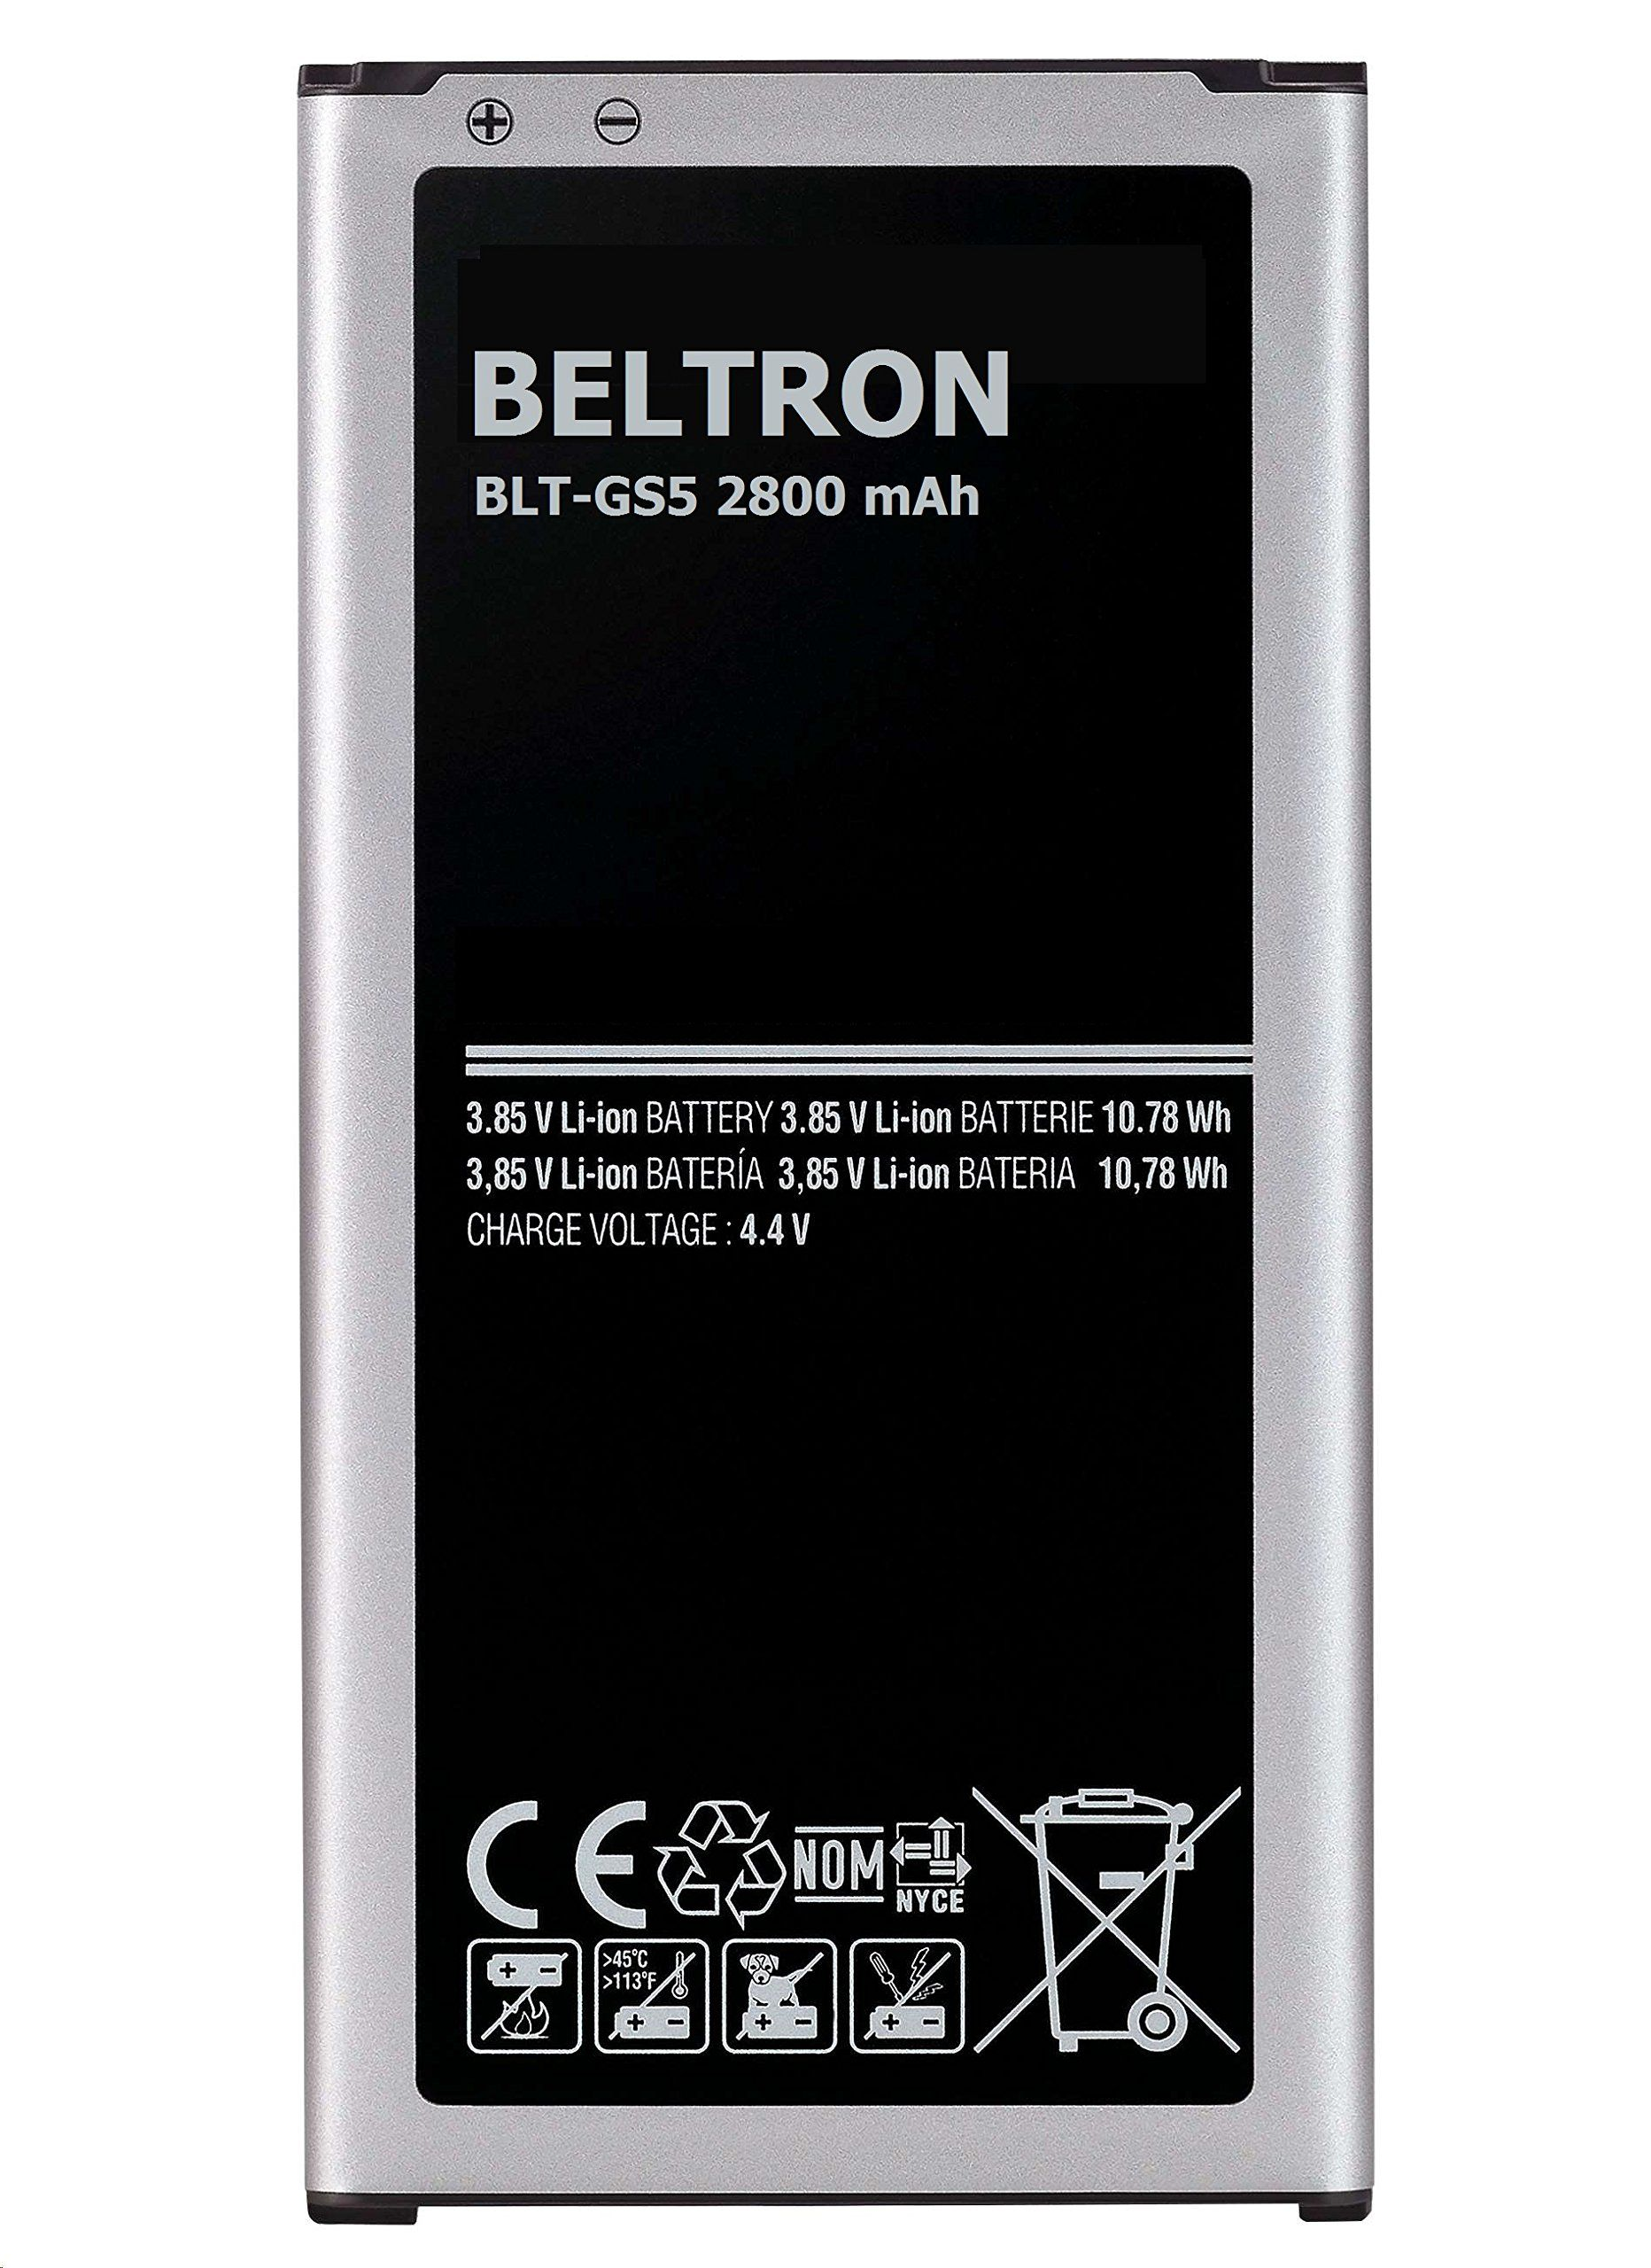 New 2800 Mah Beltron Replacement Battery For Samsung Galaxy S5 S5 Active G870 G900 I9600 Eb Bg900 Https Top Samsung Galaxy S5 Galaxy S5 Samsung Galaxy